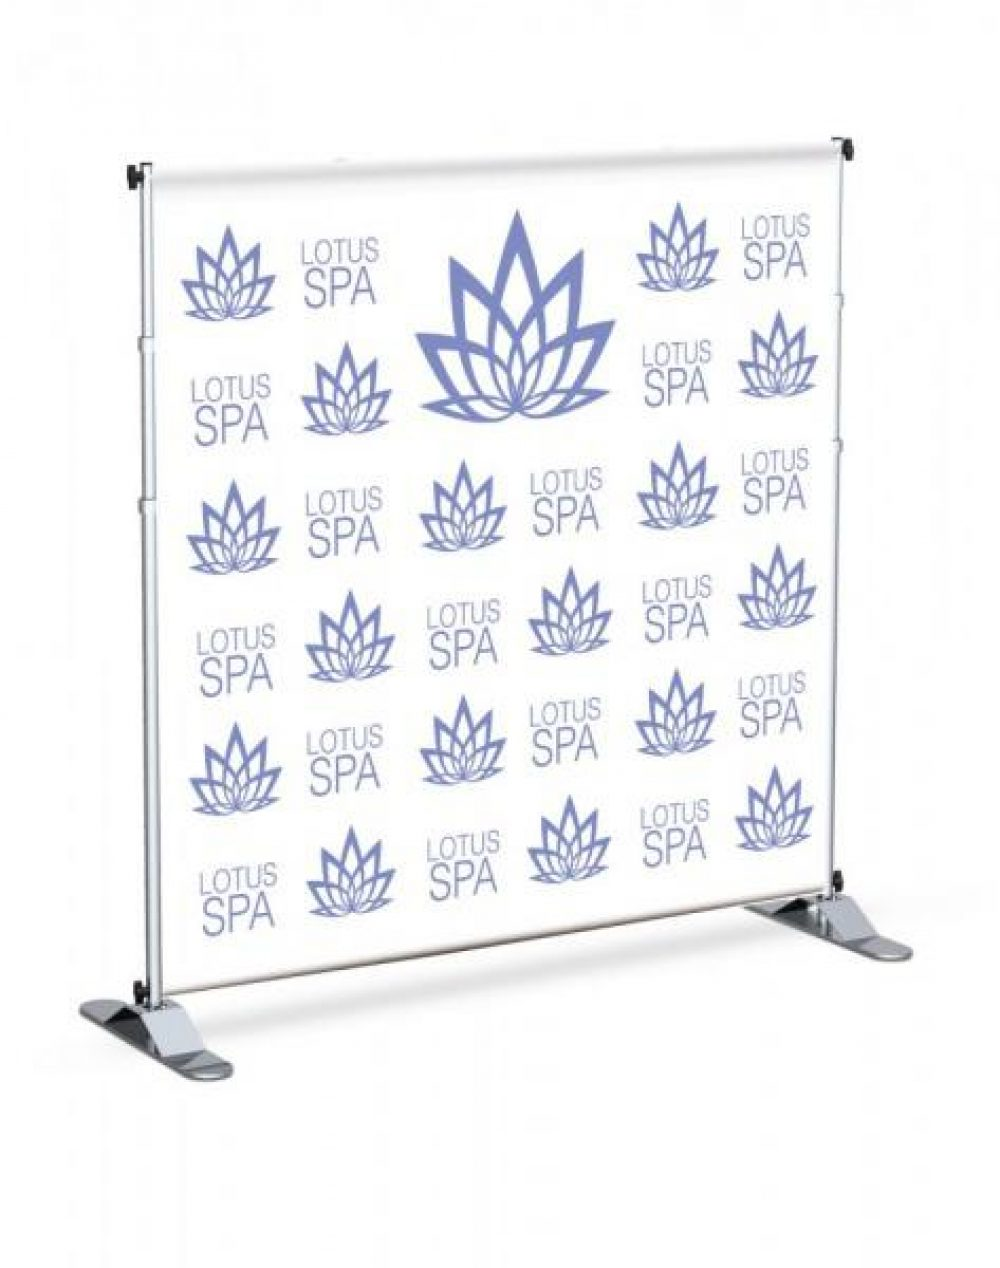 6x6 step and repeat banner stands